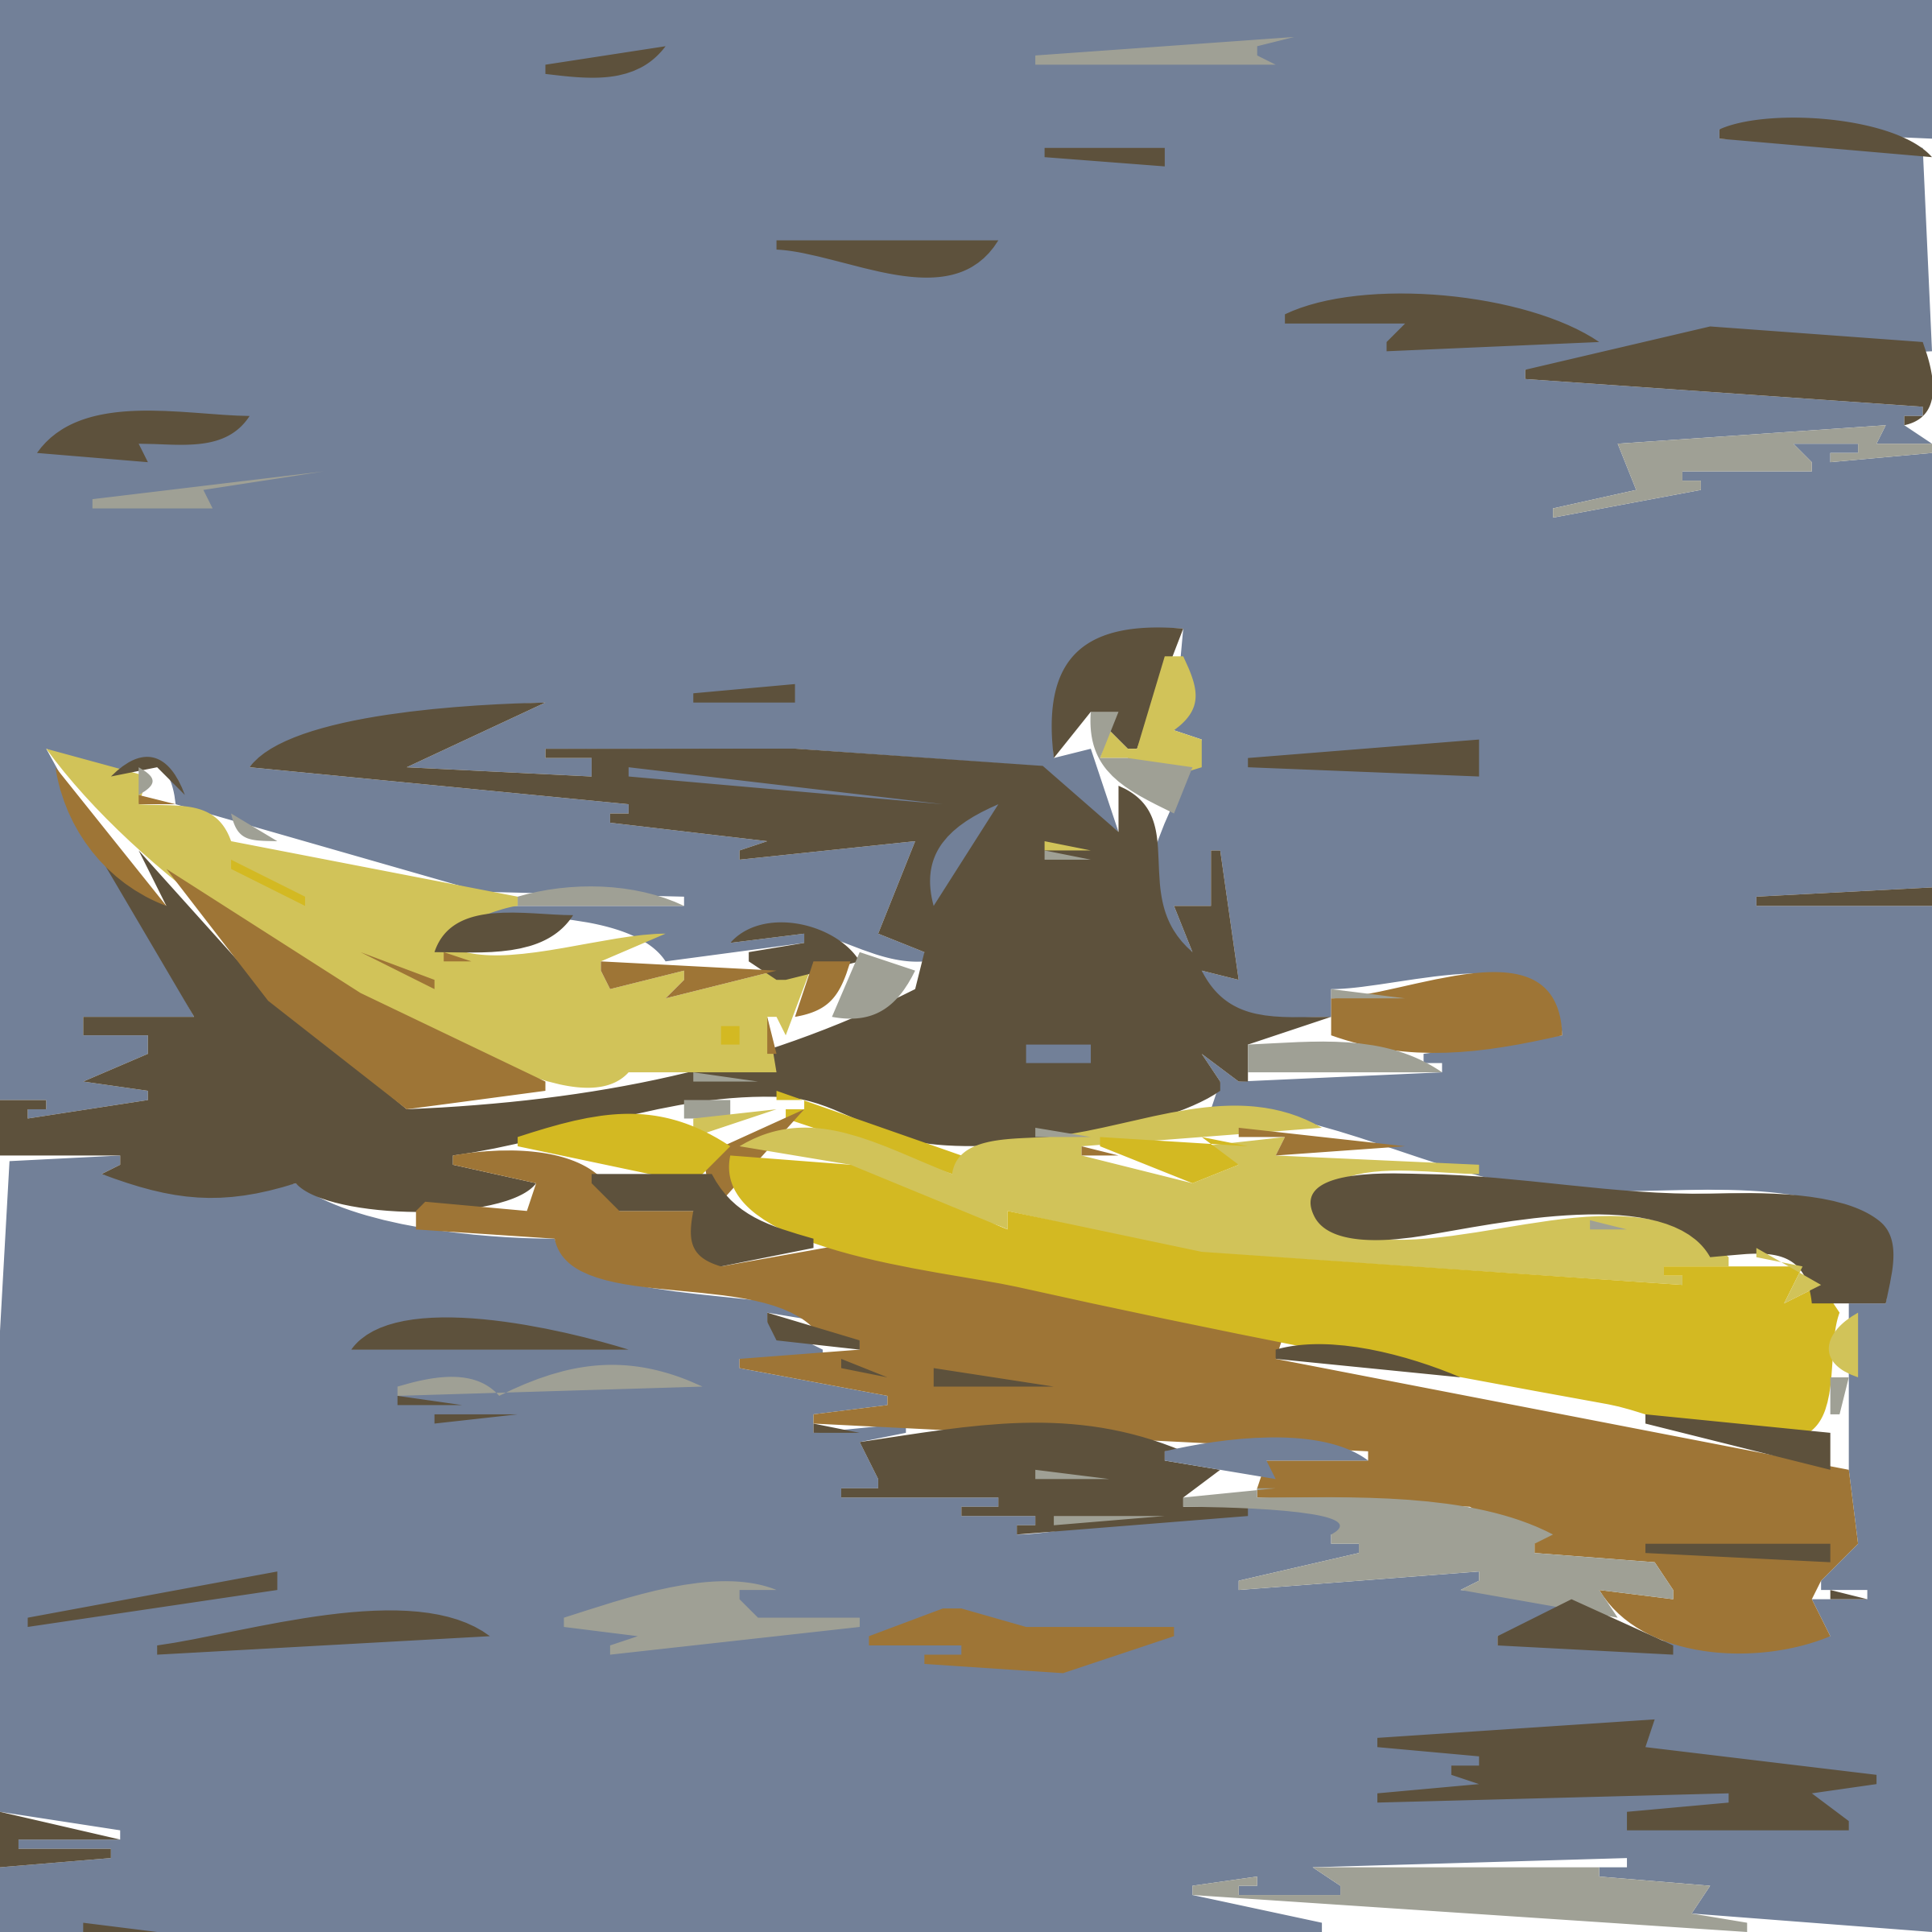 canoeing by mdlsoft